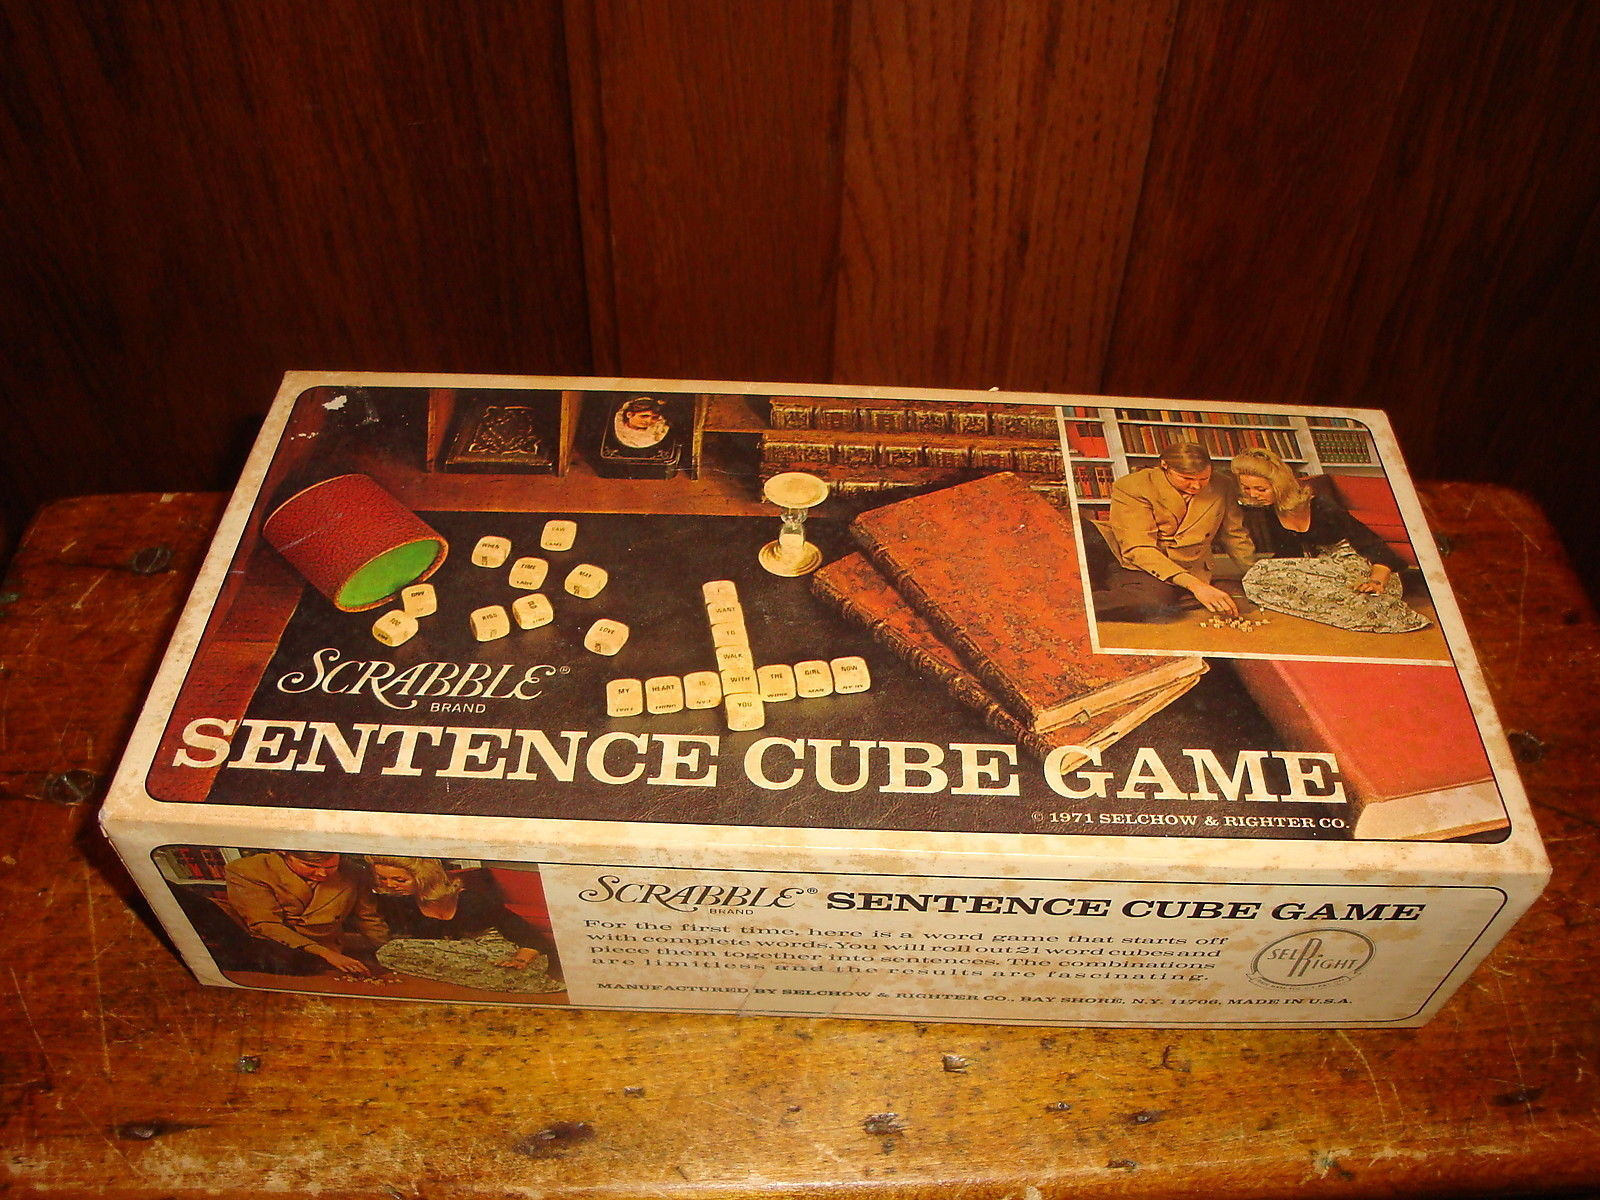 Primary image for Scrabble Sentence Cube Game 1971 Selchow & Righter Co Vintage Complete